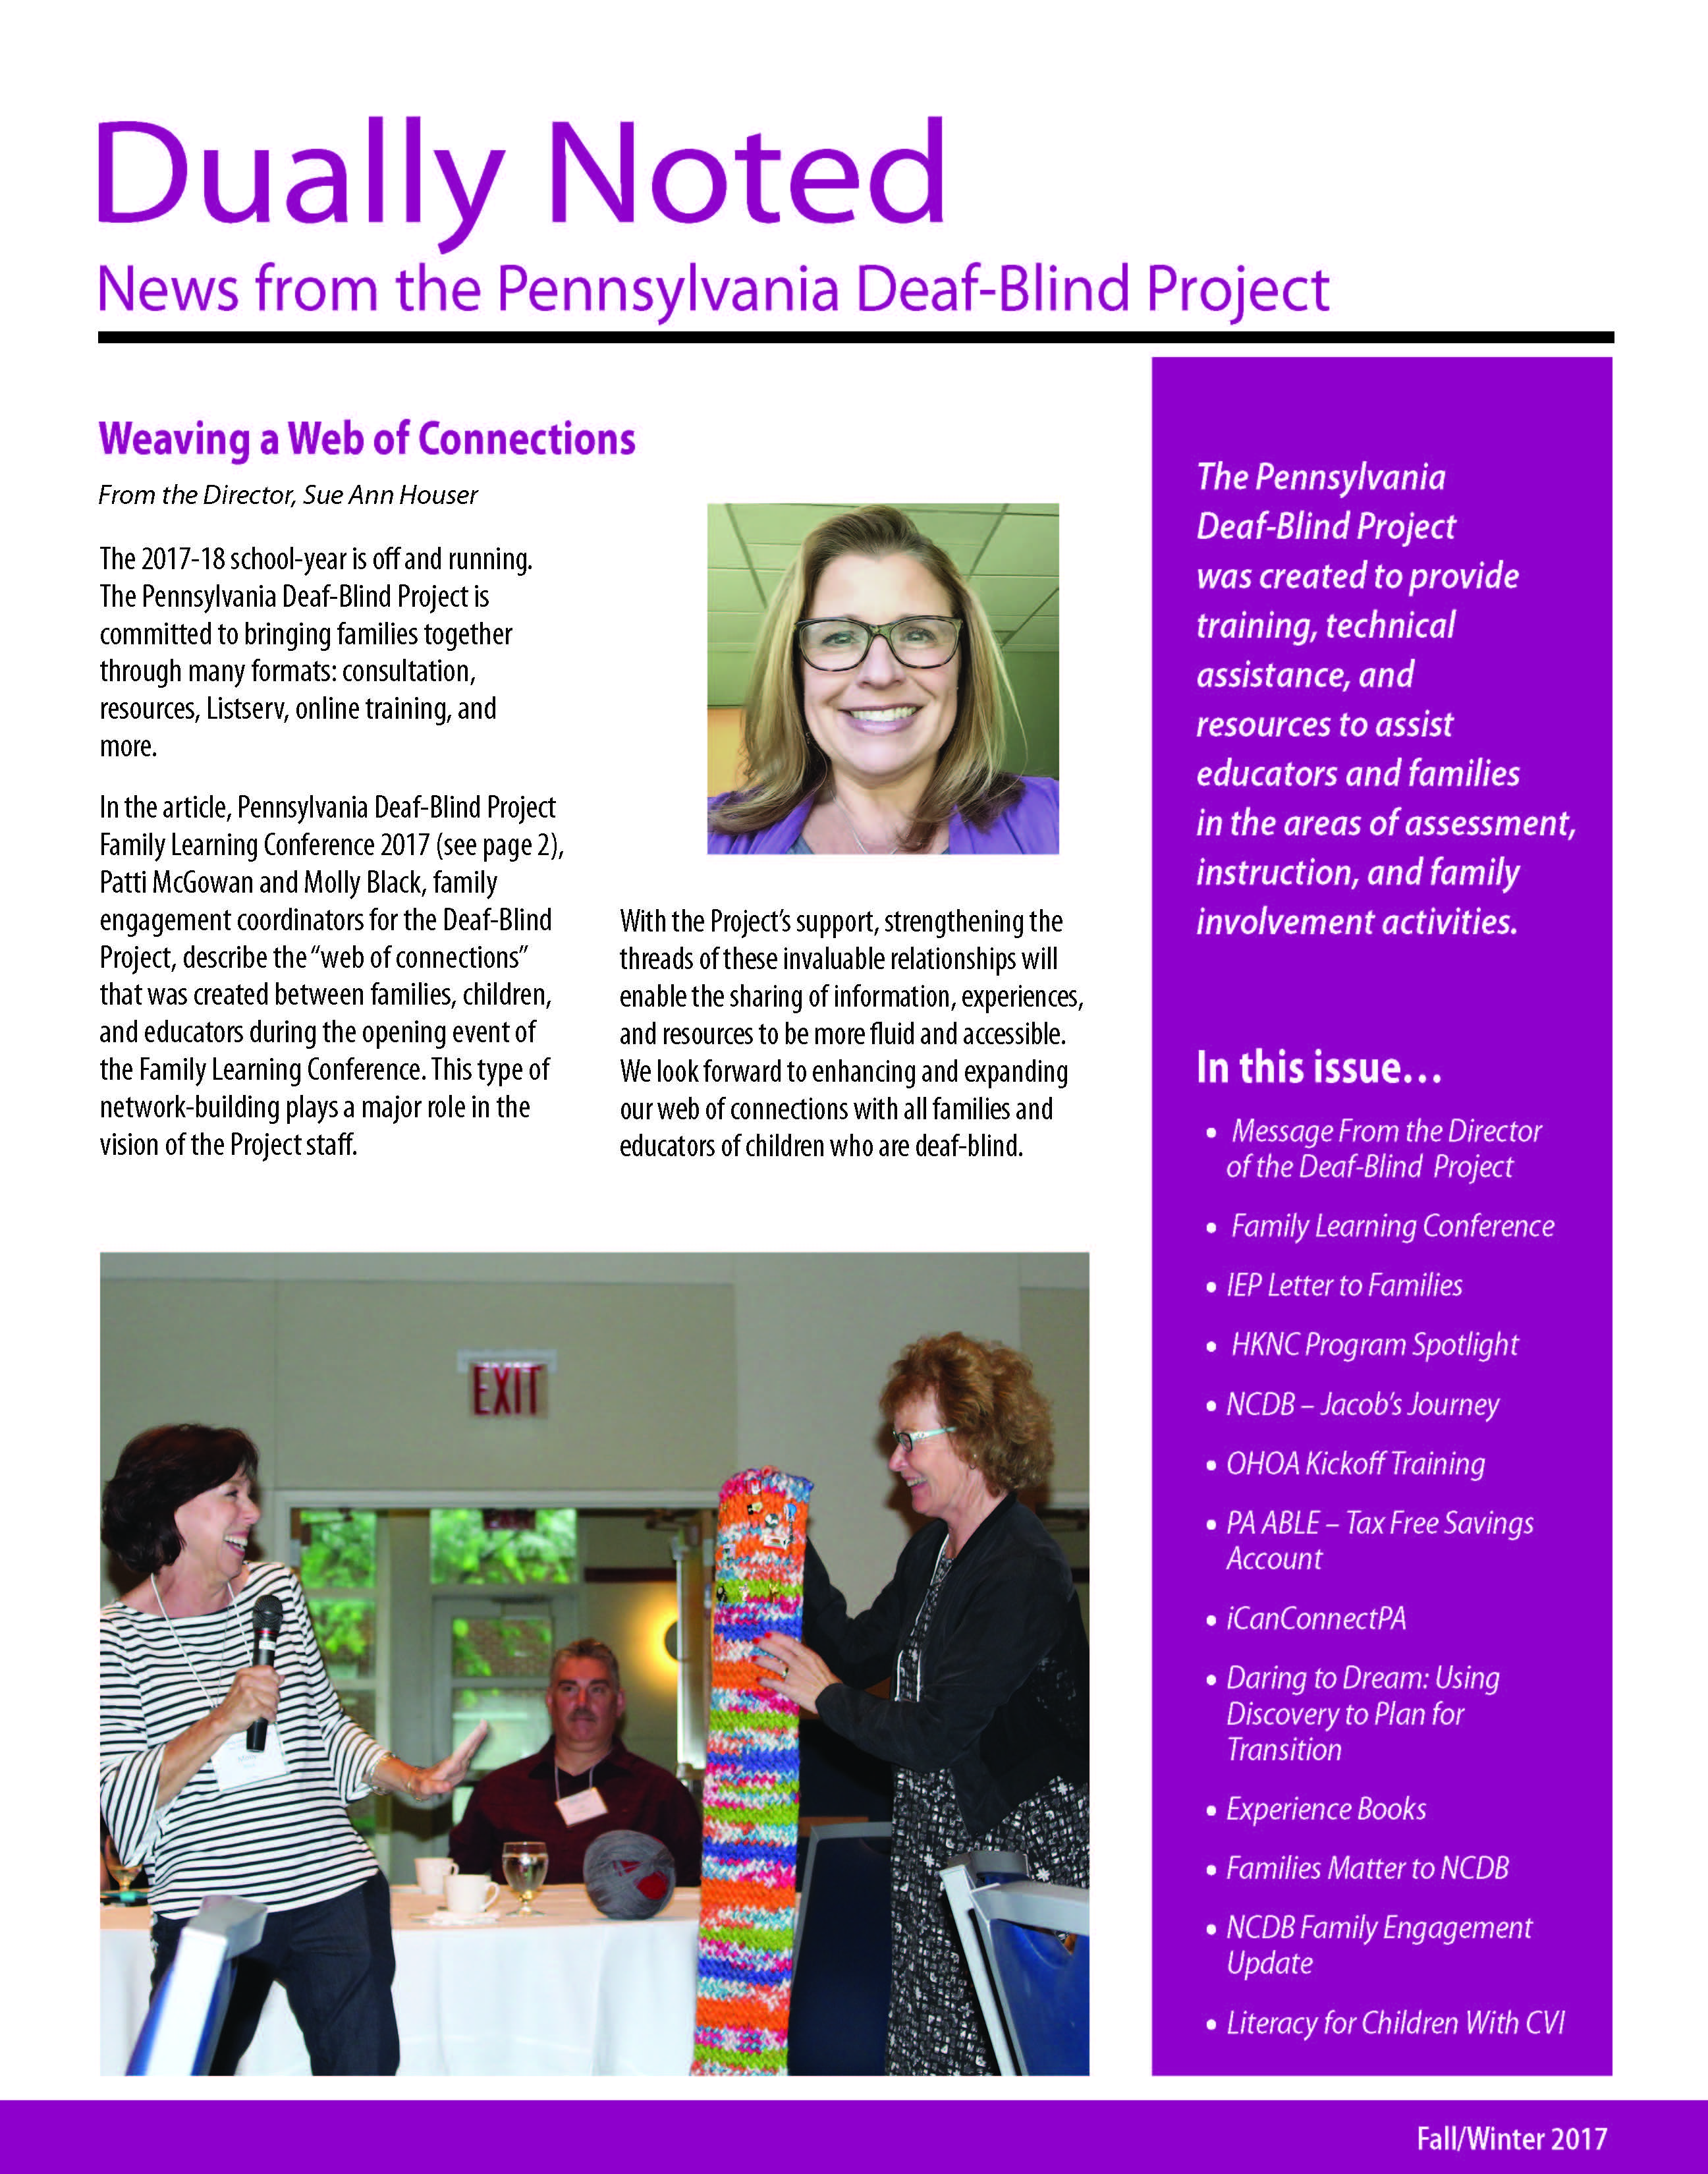 Dually Noted: News from the Deaf-Blind Project - Fall/Winter 2017